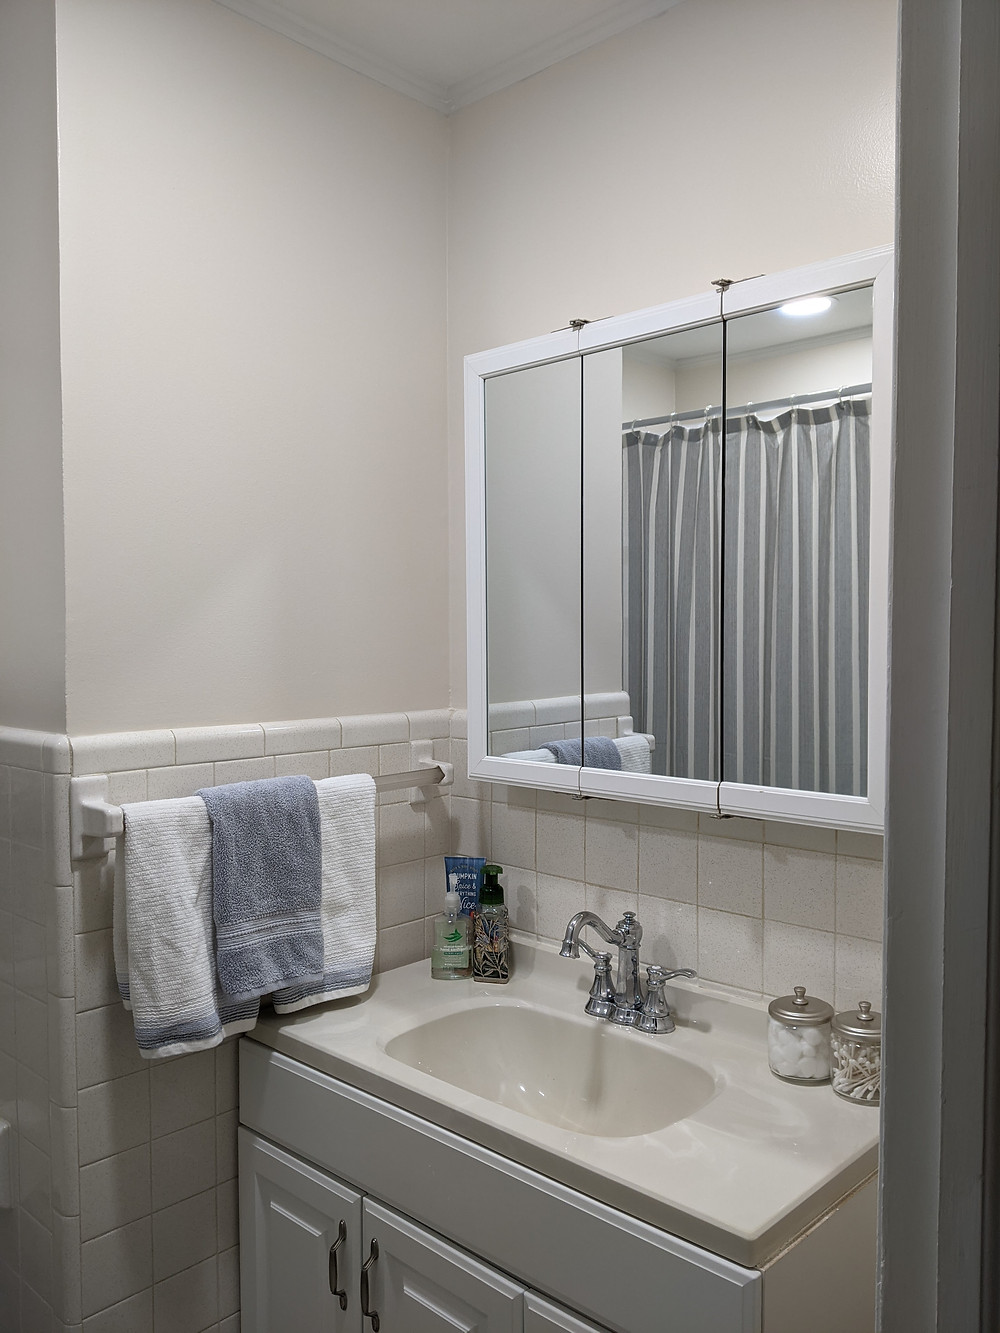 Our Two Year Home Anniversary + Updates - amanda macgregor - joseph centineo - home lifestyle  - bathroom